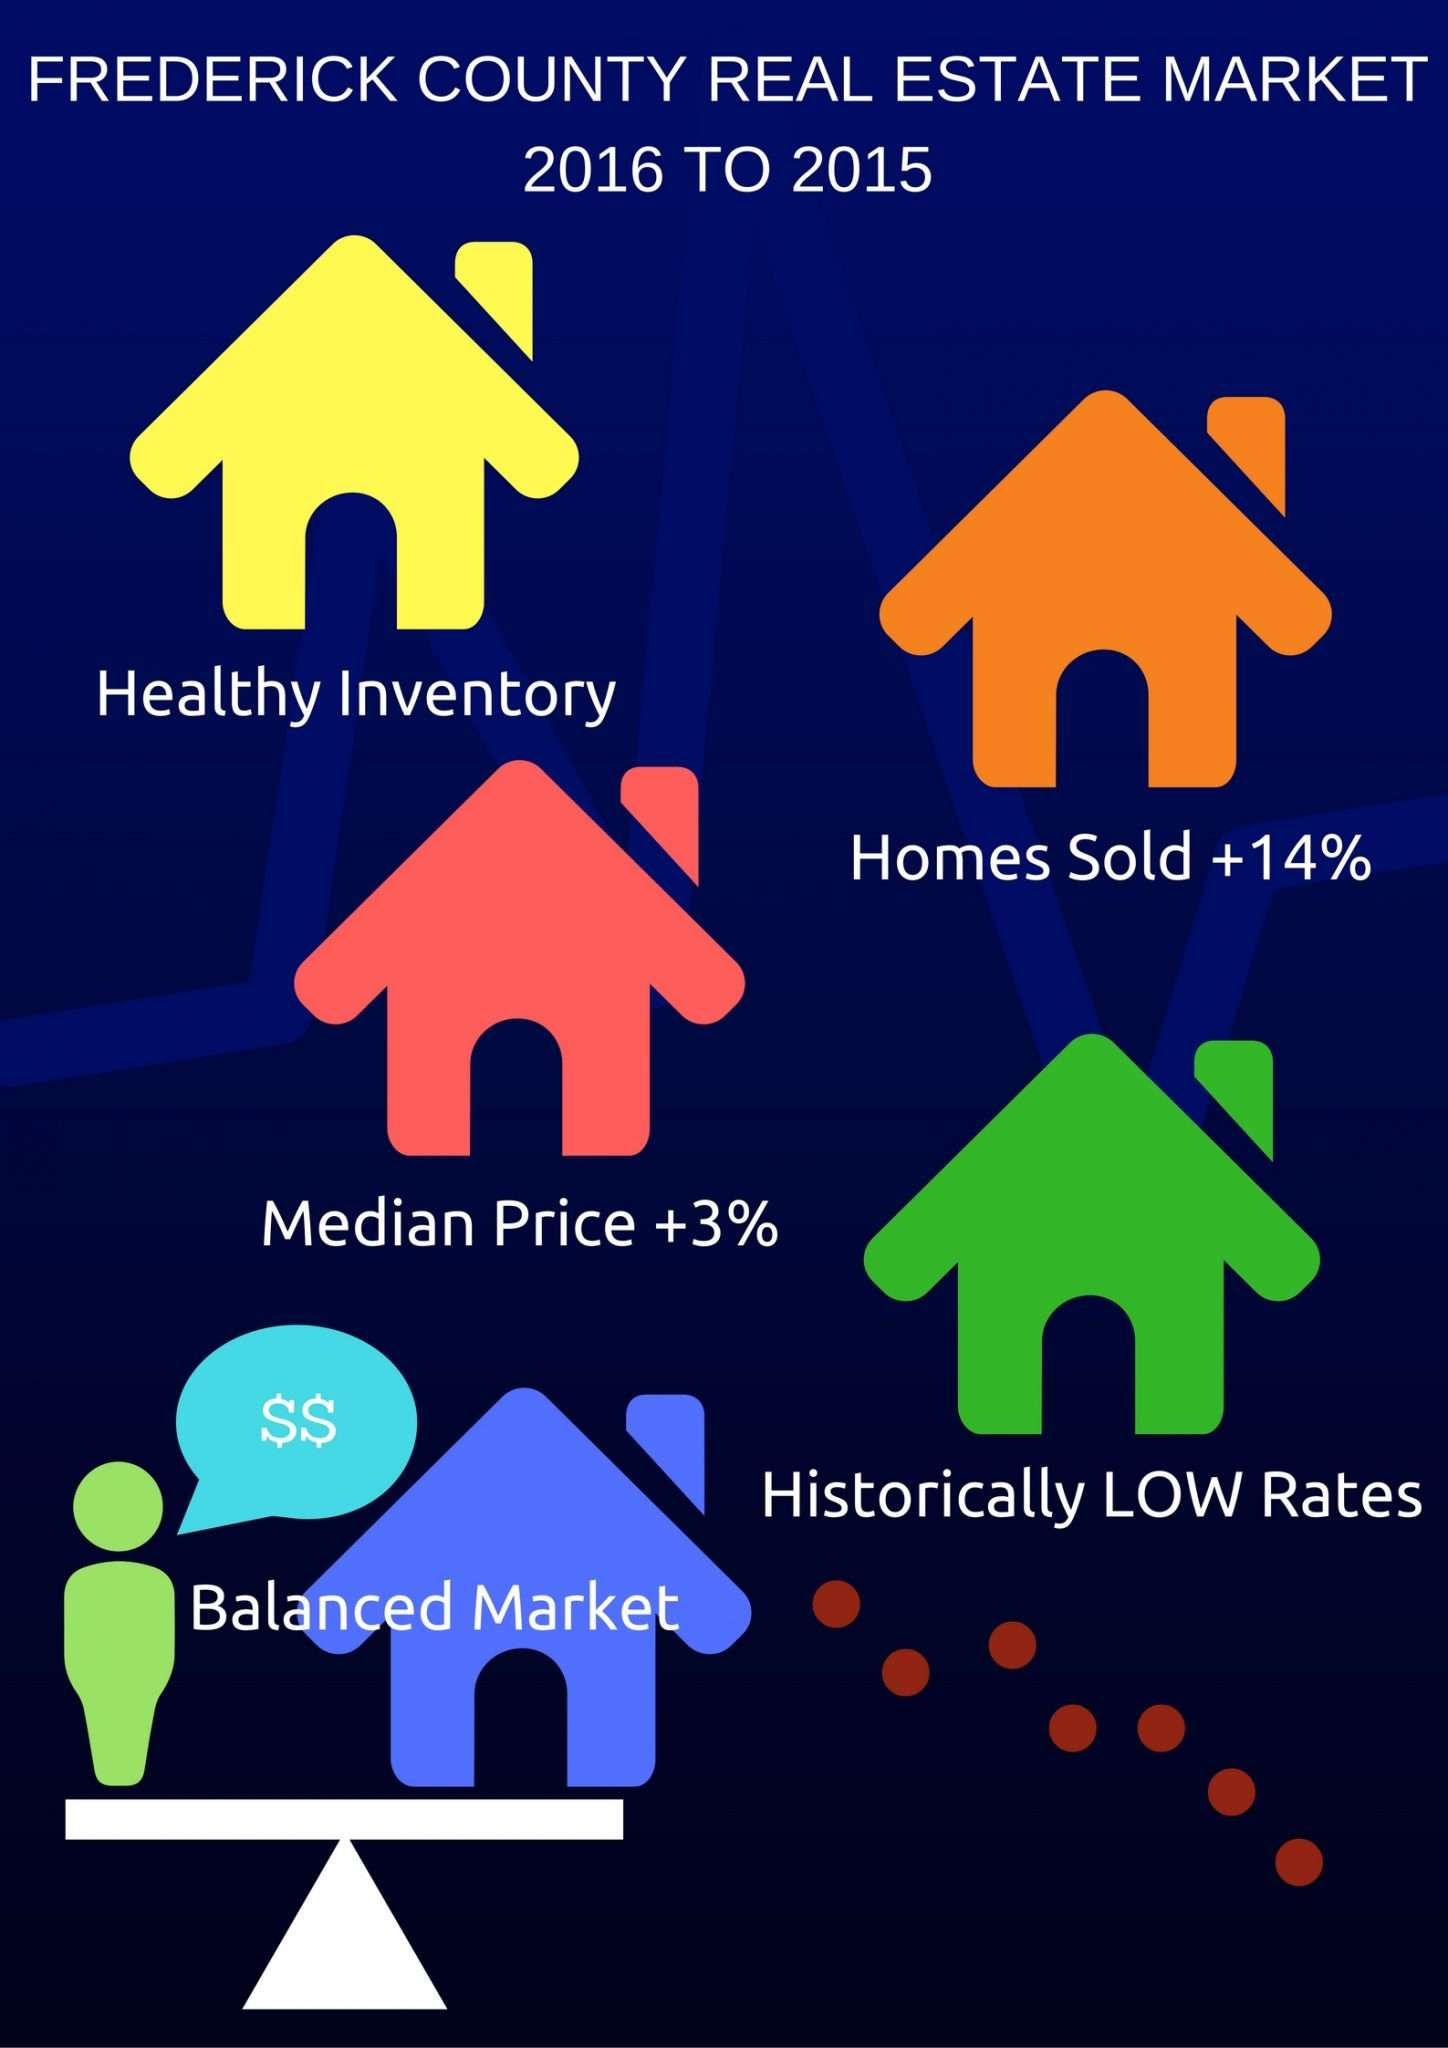 FREDERICK COUNTY REAL ESTATE MARKET 2016 COMPARED TO 2015